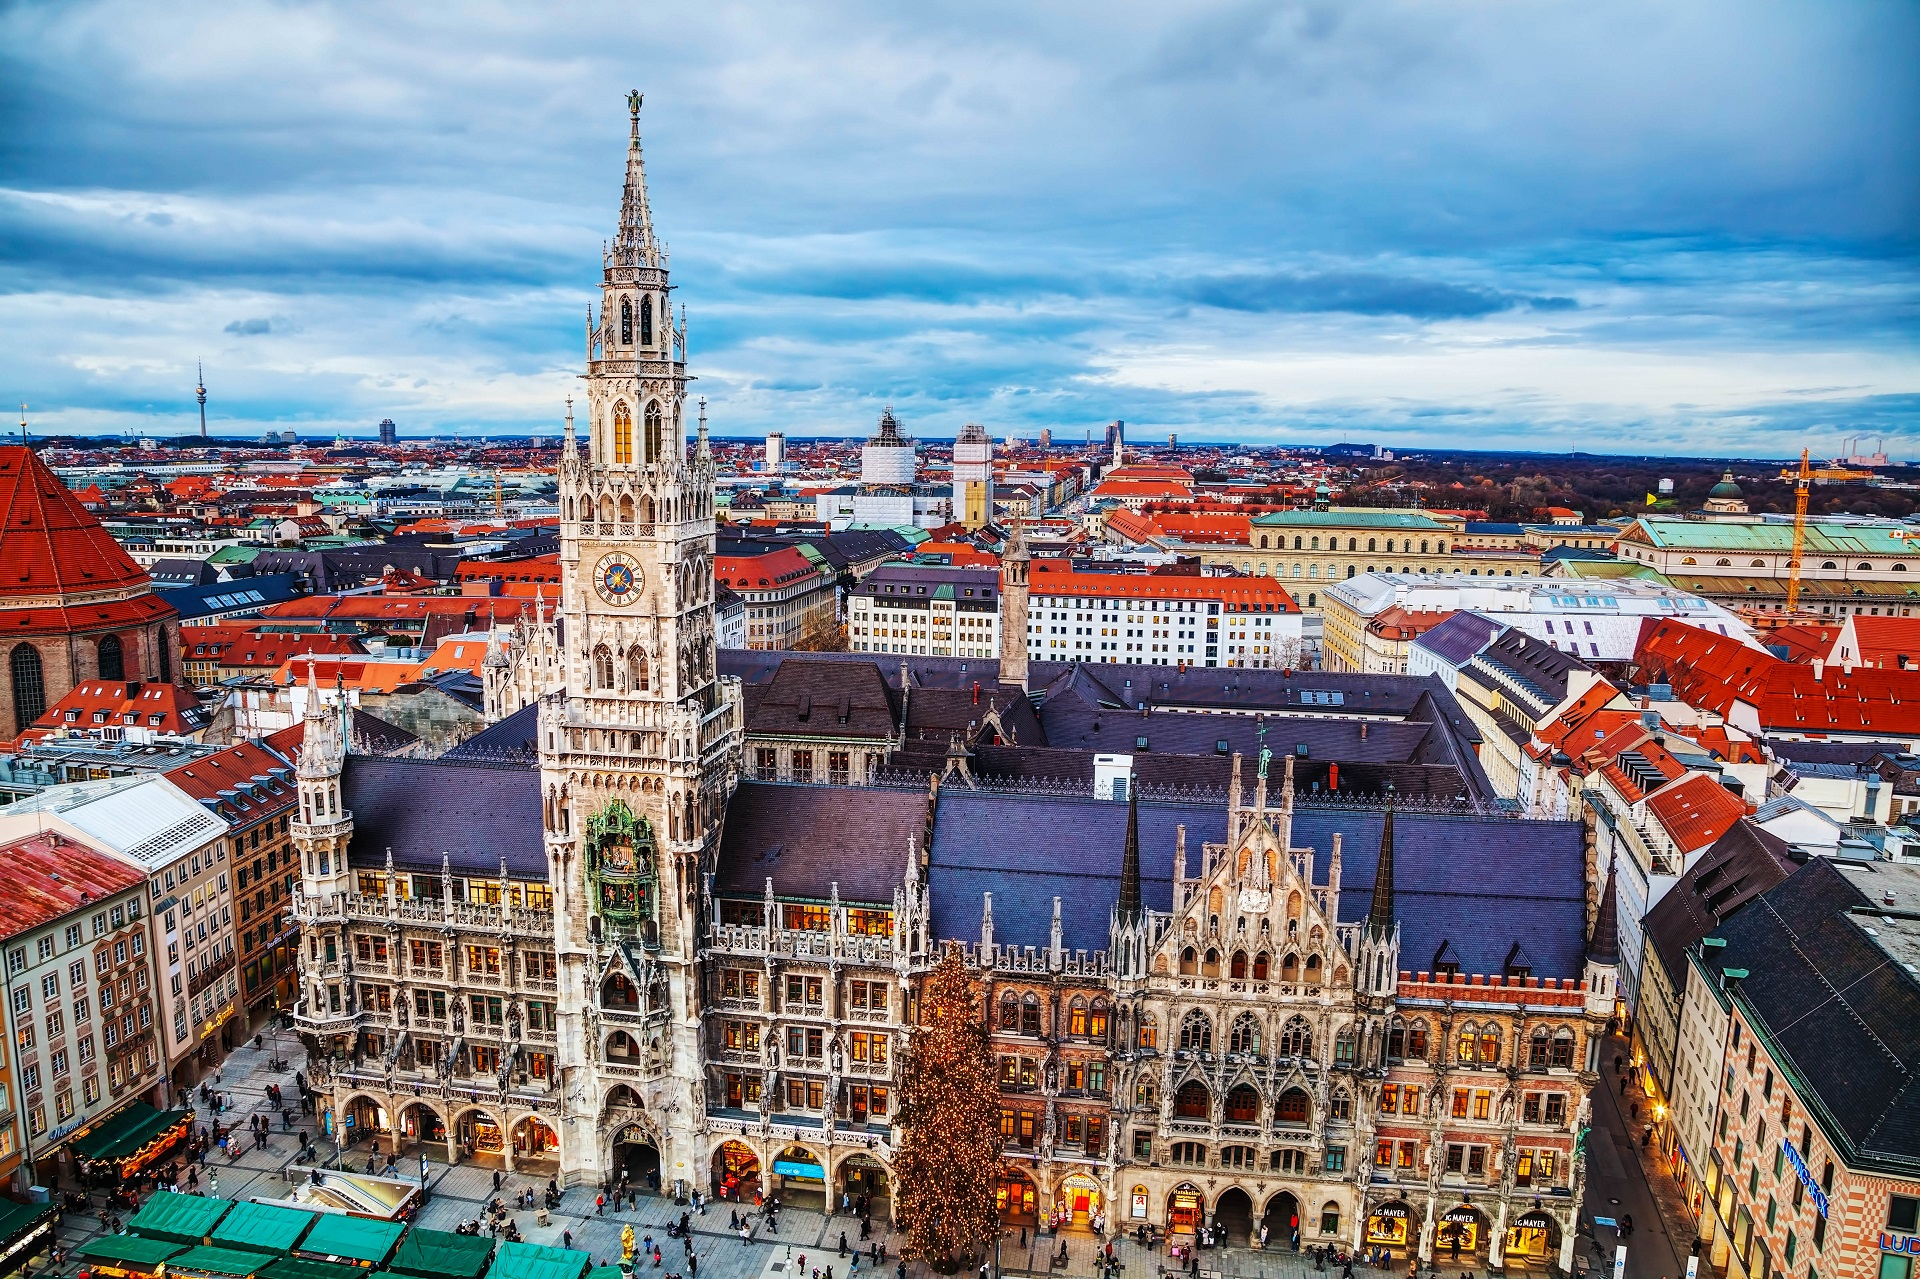 Munich, Germany - November 30, 2015: Aerial view of Marienplatz with people. It's the 3rd largest city in Germany, after Berlin and Hamburg, with a population of around 1.5 million.